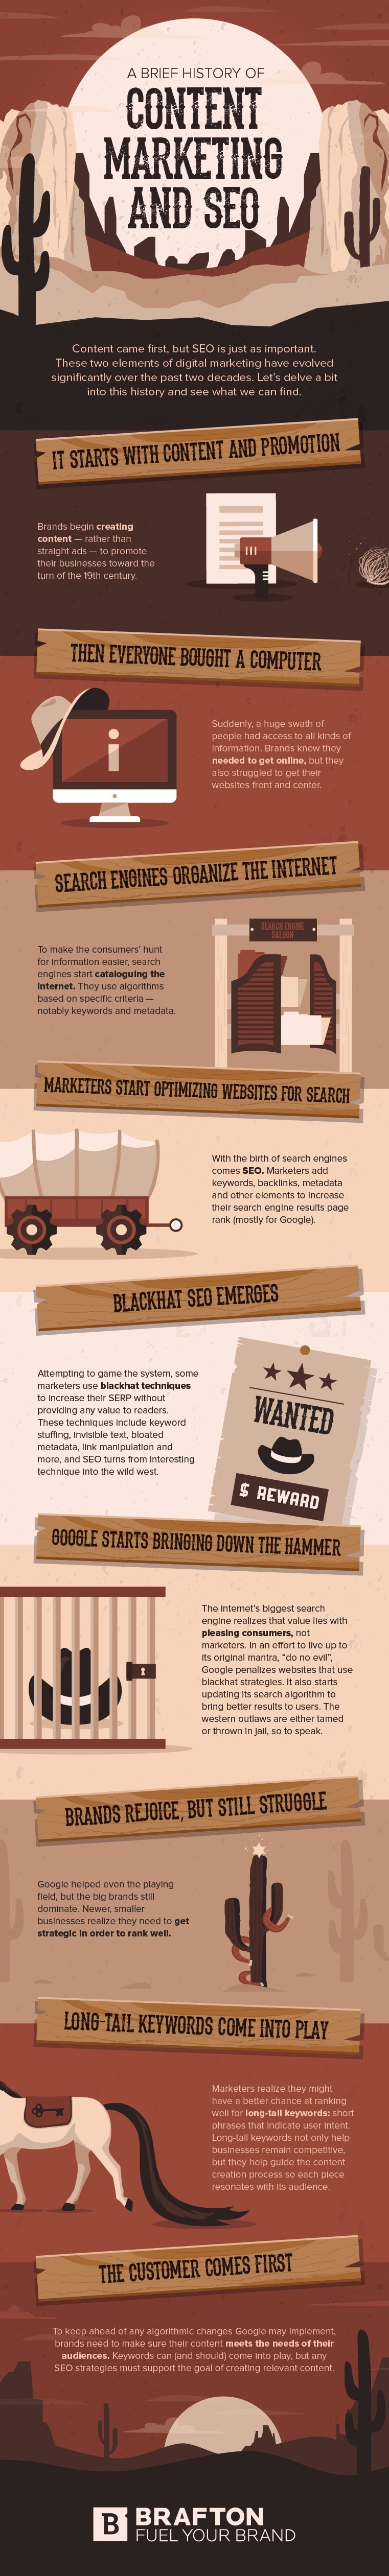 The History Of Content Marketing and SEO (Infographic)